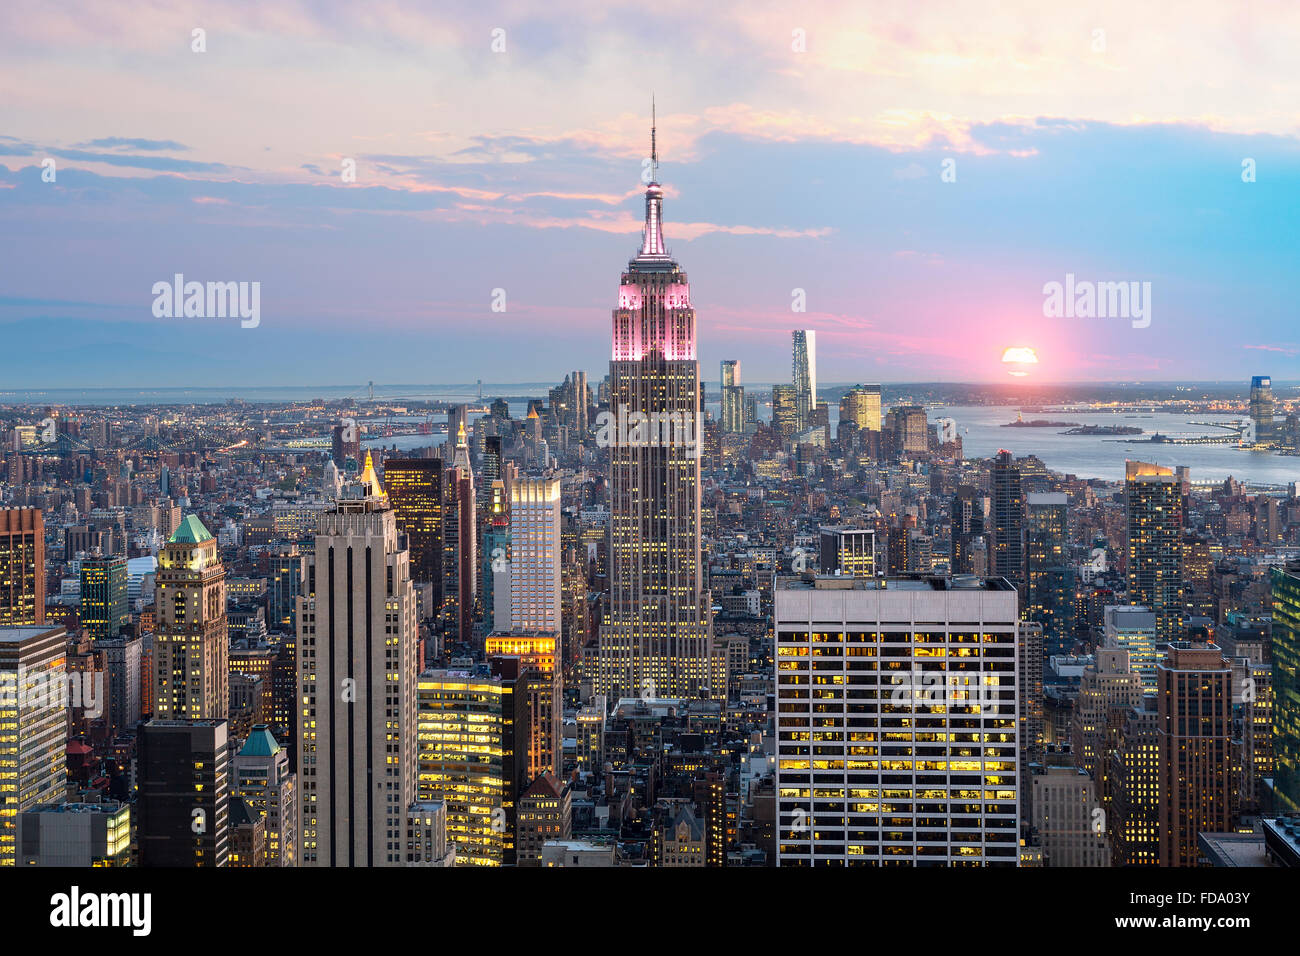 New-York City Skyline avec l'Empire State Building Photo Stock